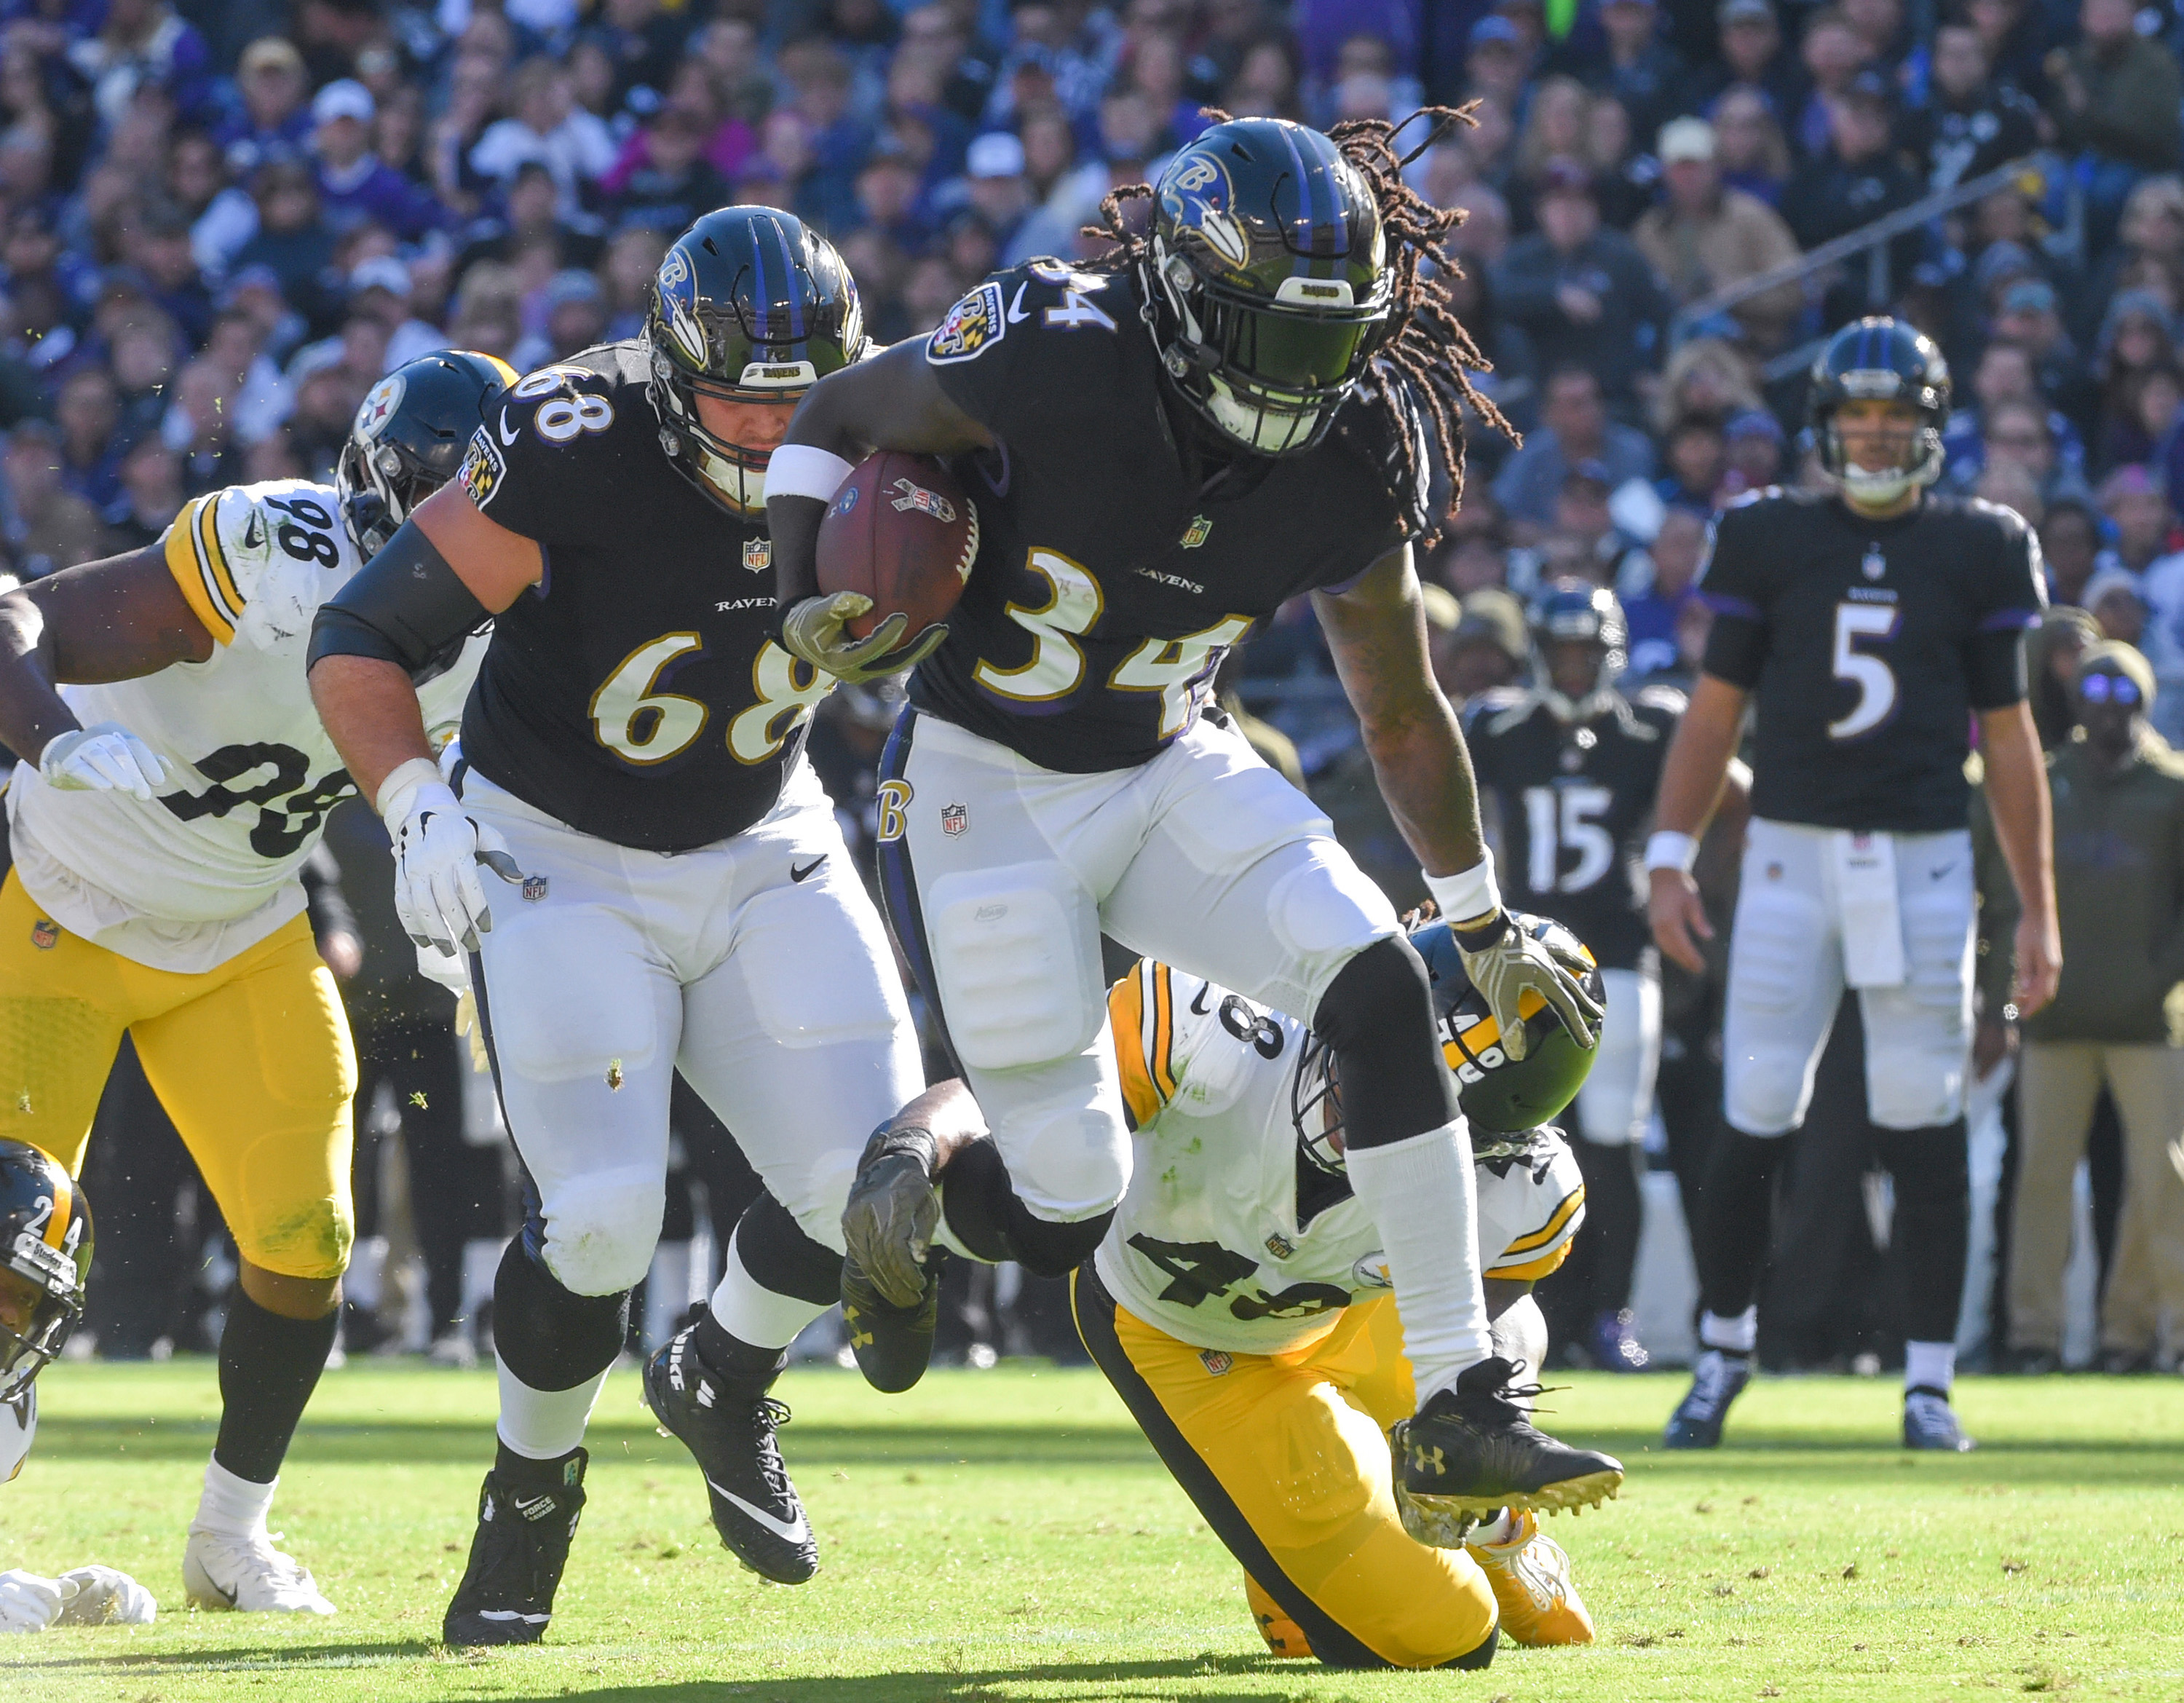 Ravens RB Alex Collins is placed on inured reserve, ending his season; RB Kenneth Dixon activated